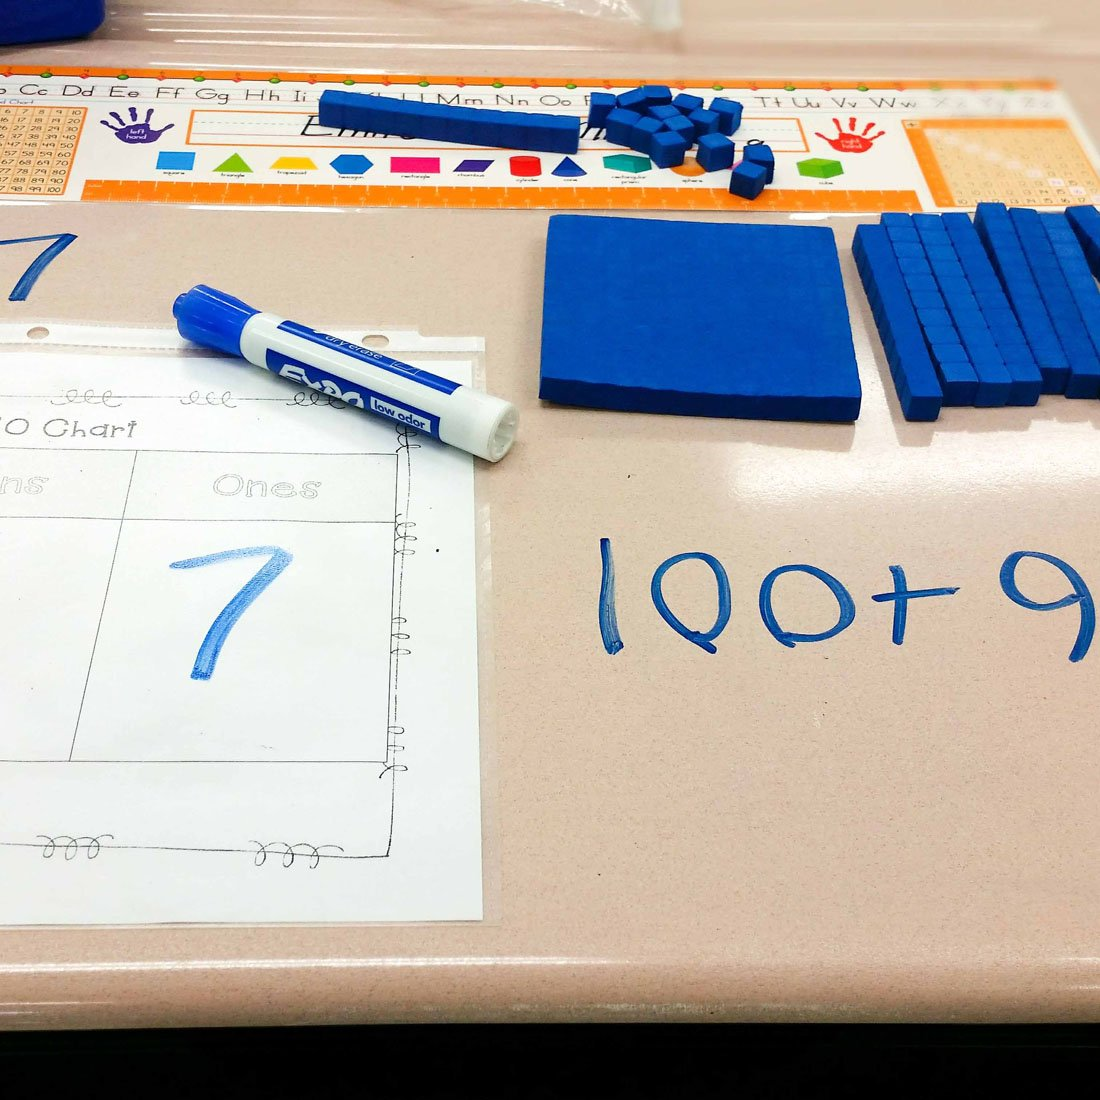 writing-math-problems-on-desk-with-expo-chisel-marker